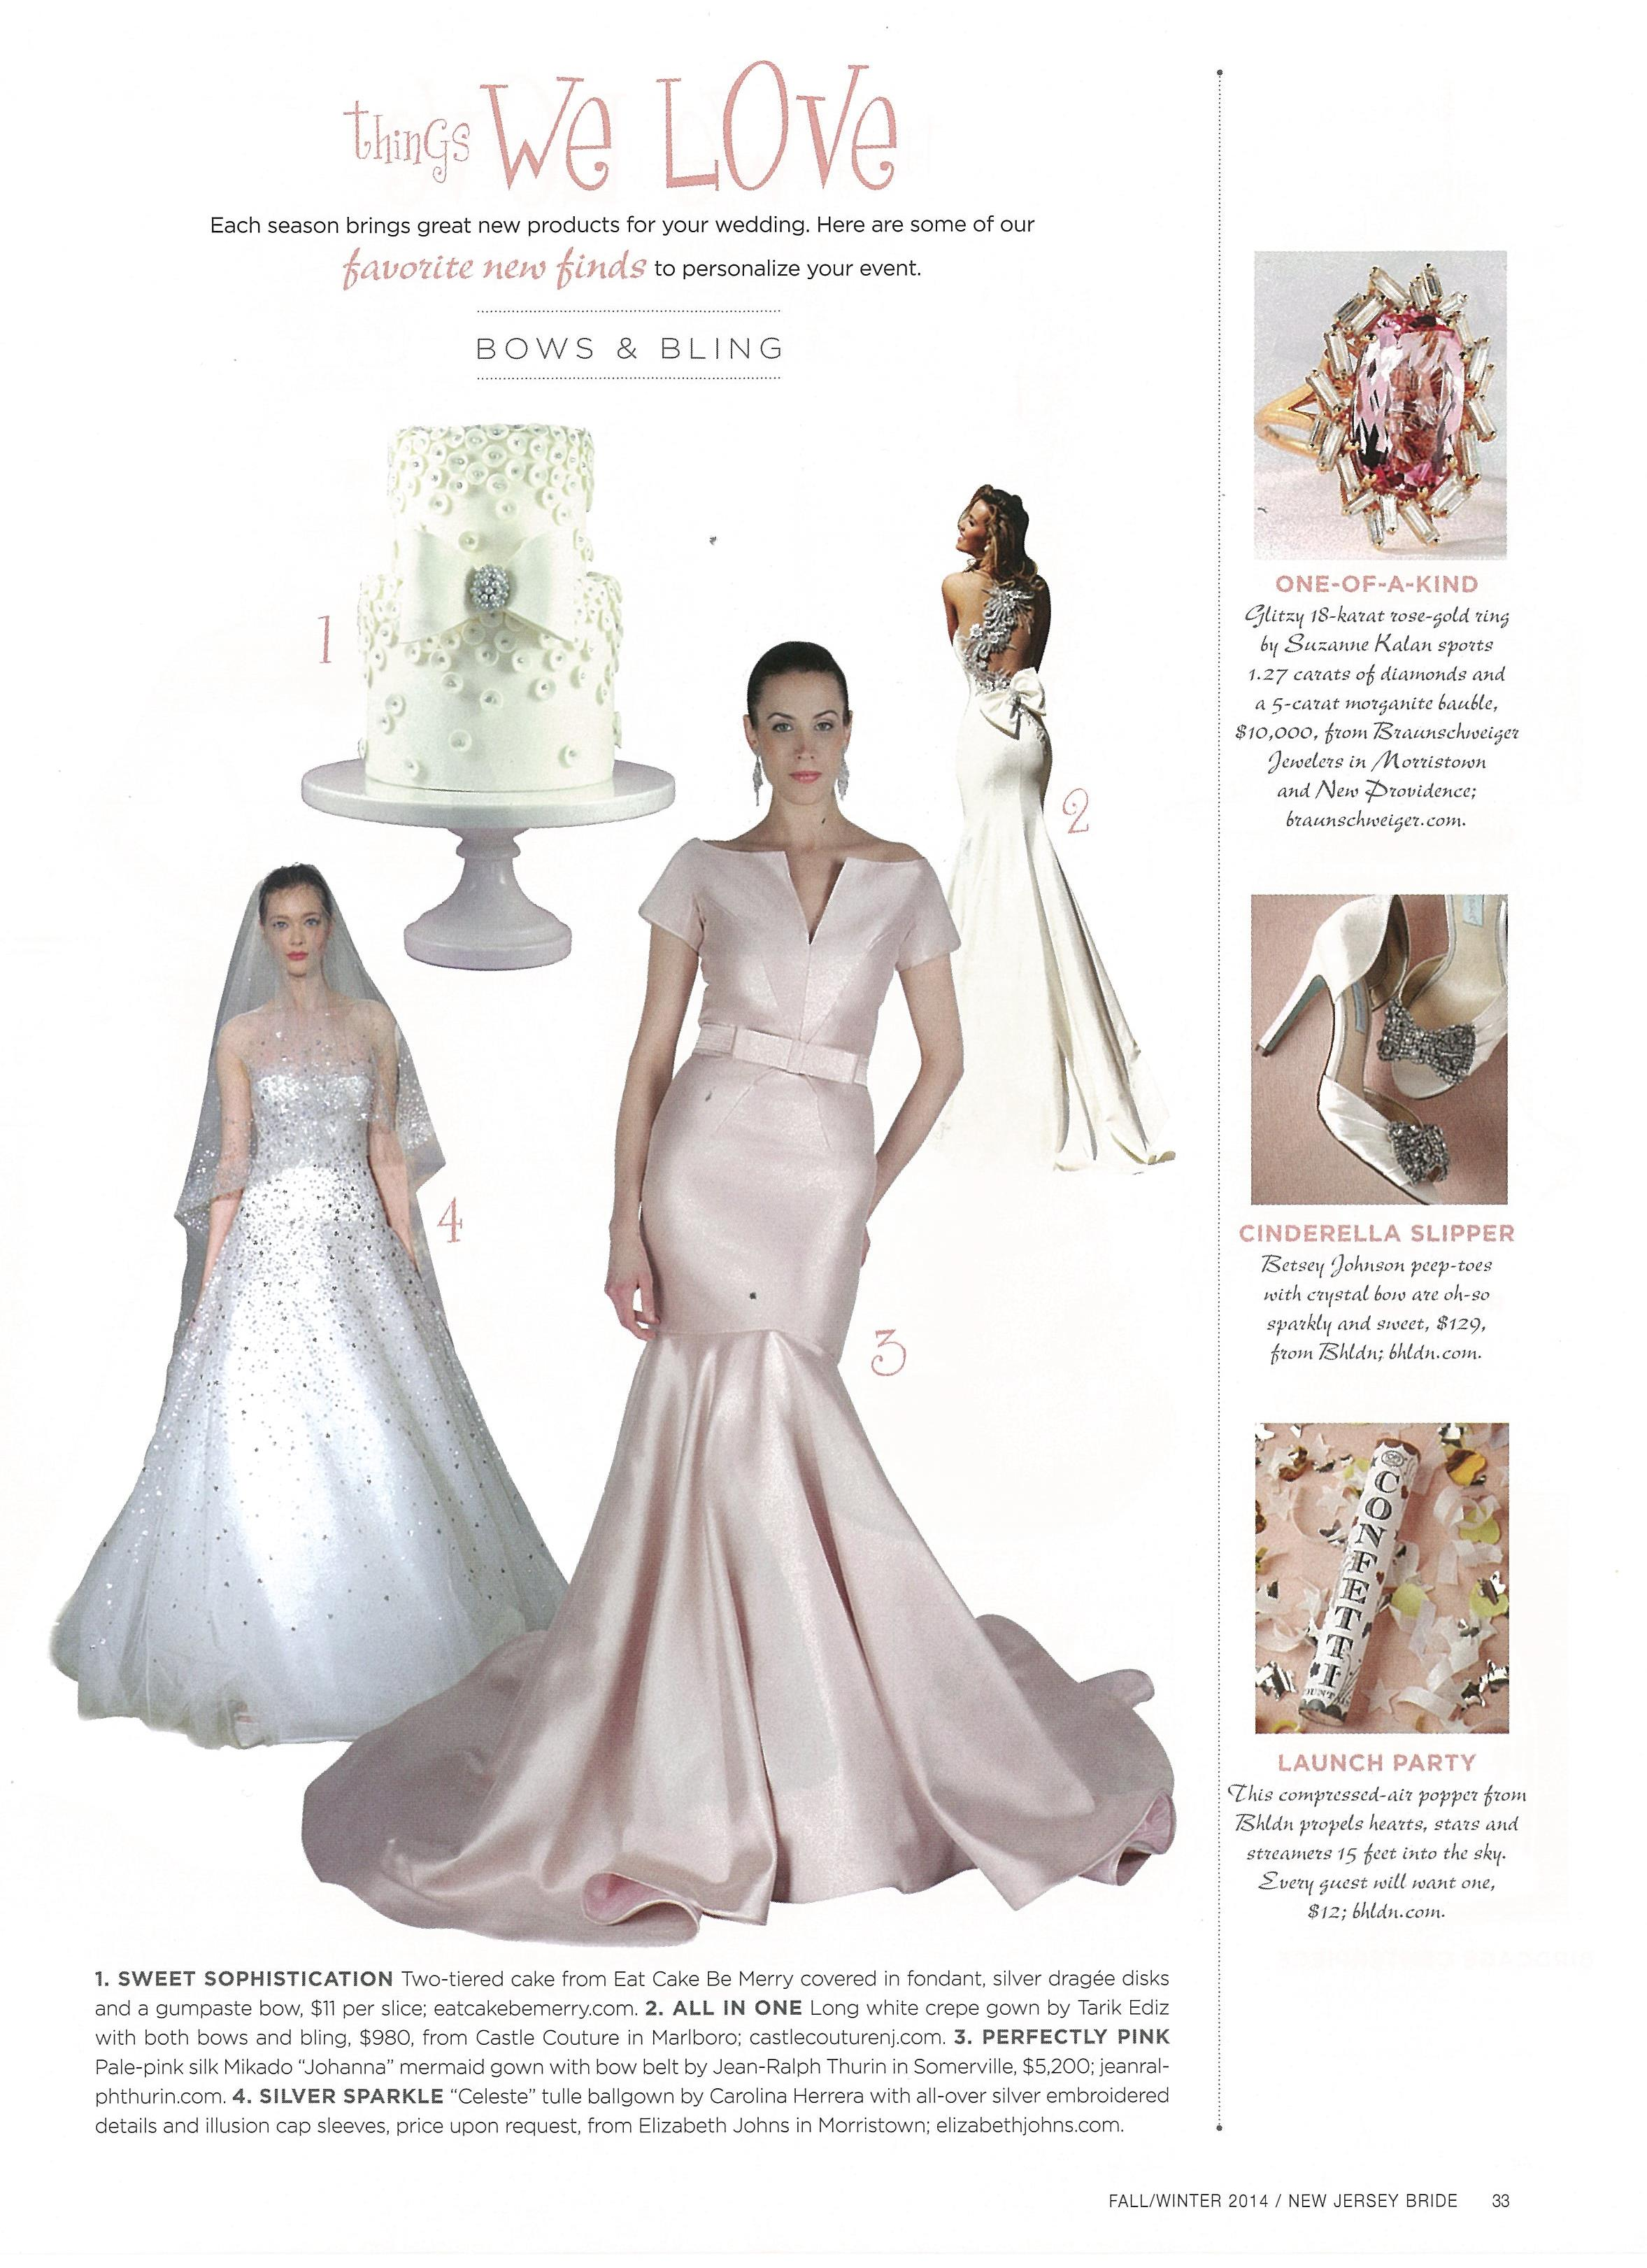 NJ Bride Fall 2014 Feature Page.jpg